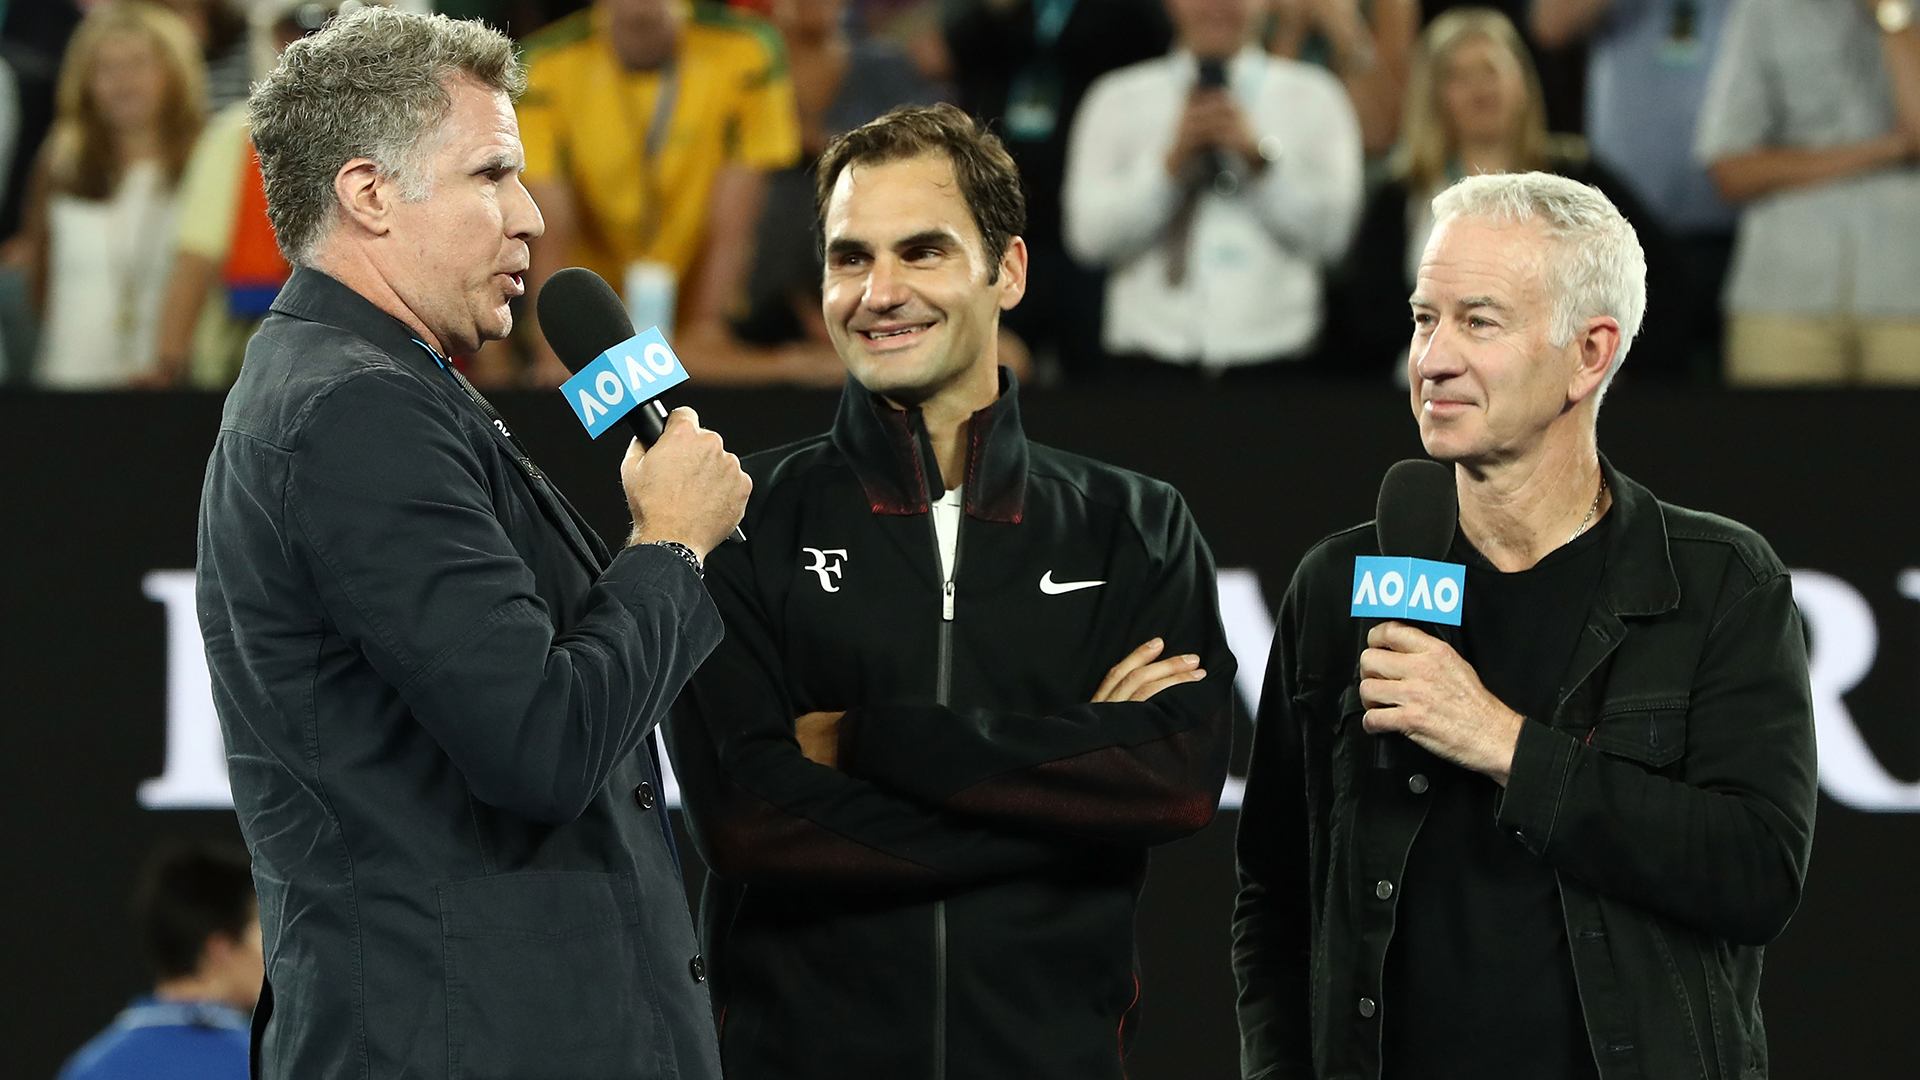 Federer requested night match to avoid Melbourne scorcher